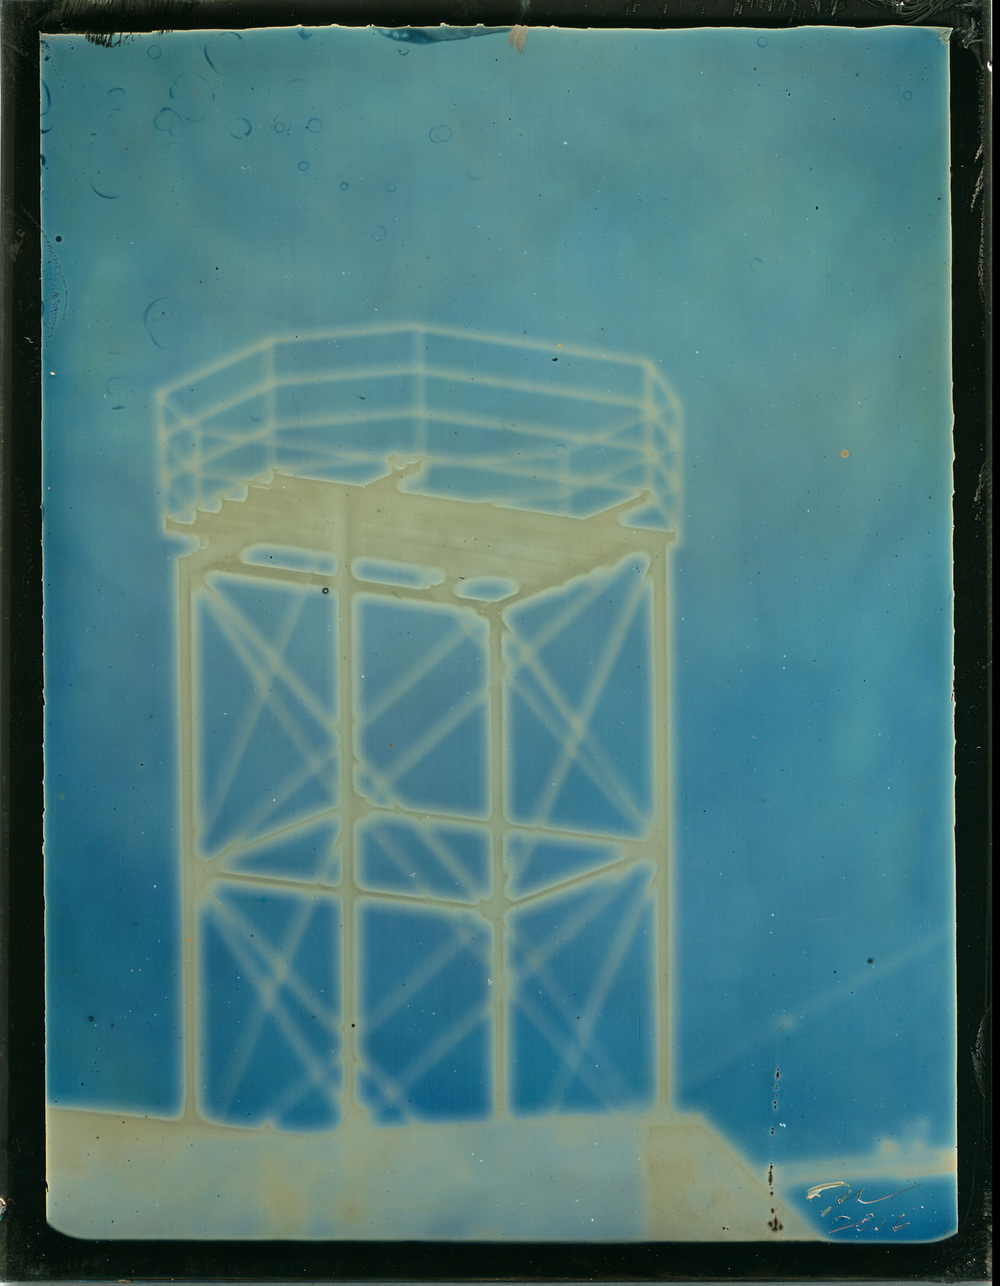 Water Tower, Unique daguerrotype, 2015 © Daniel Carrillo